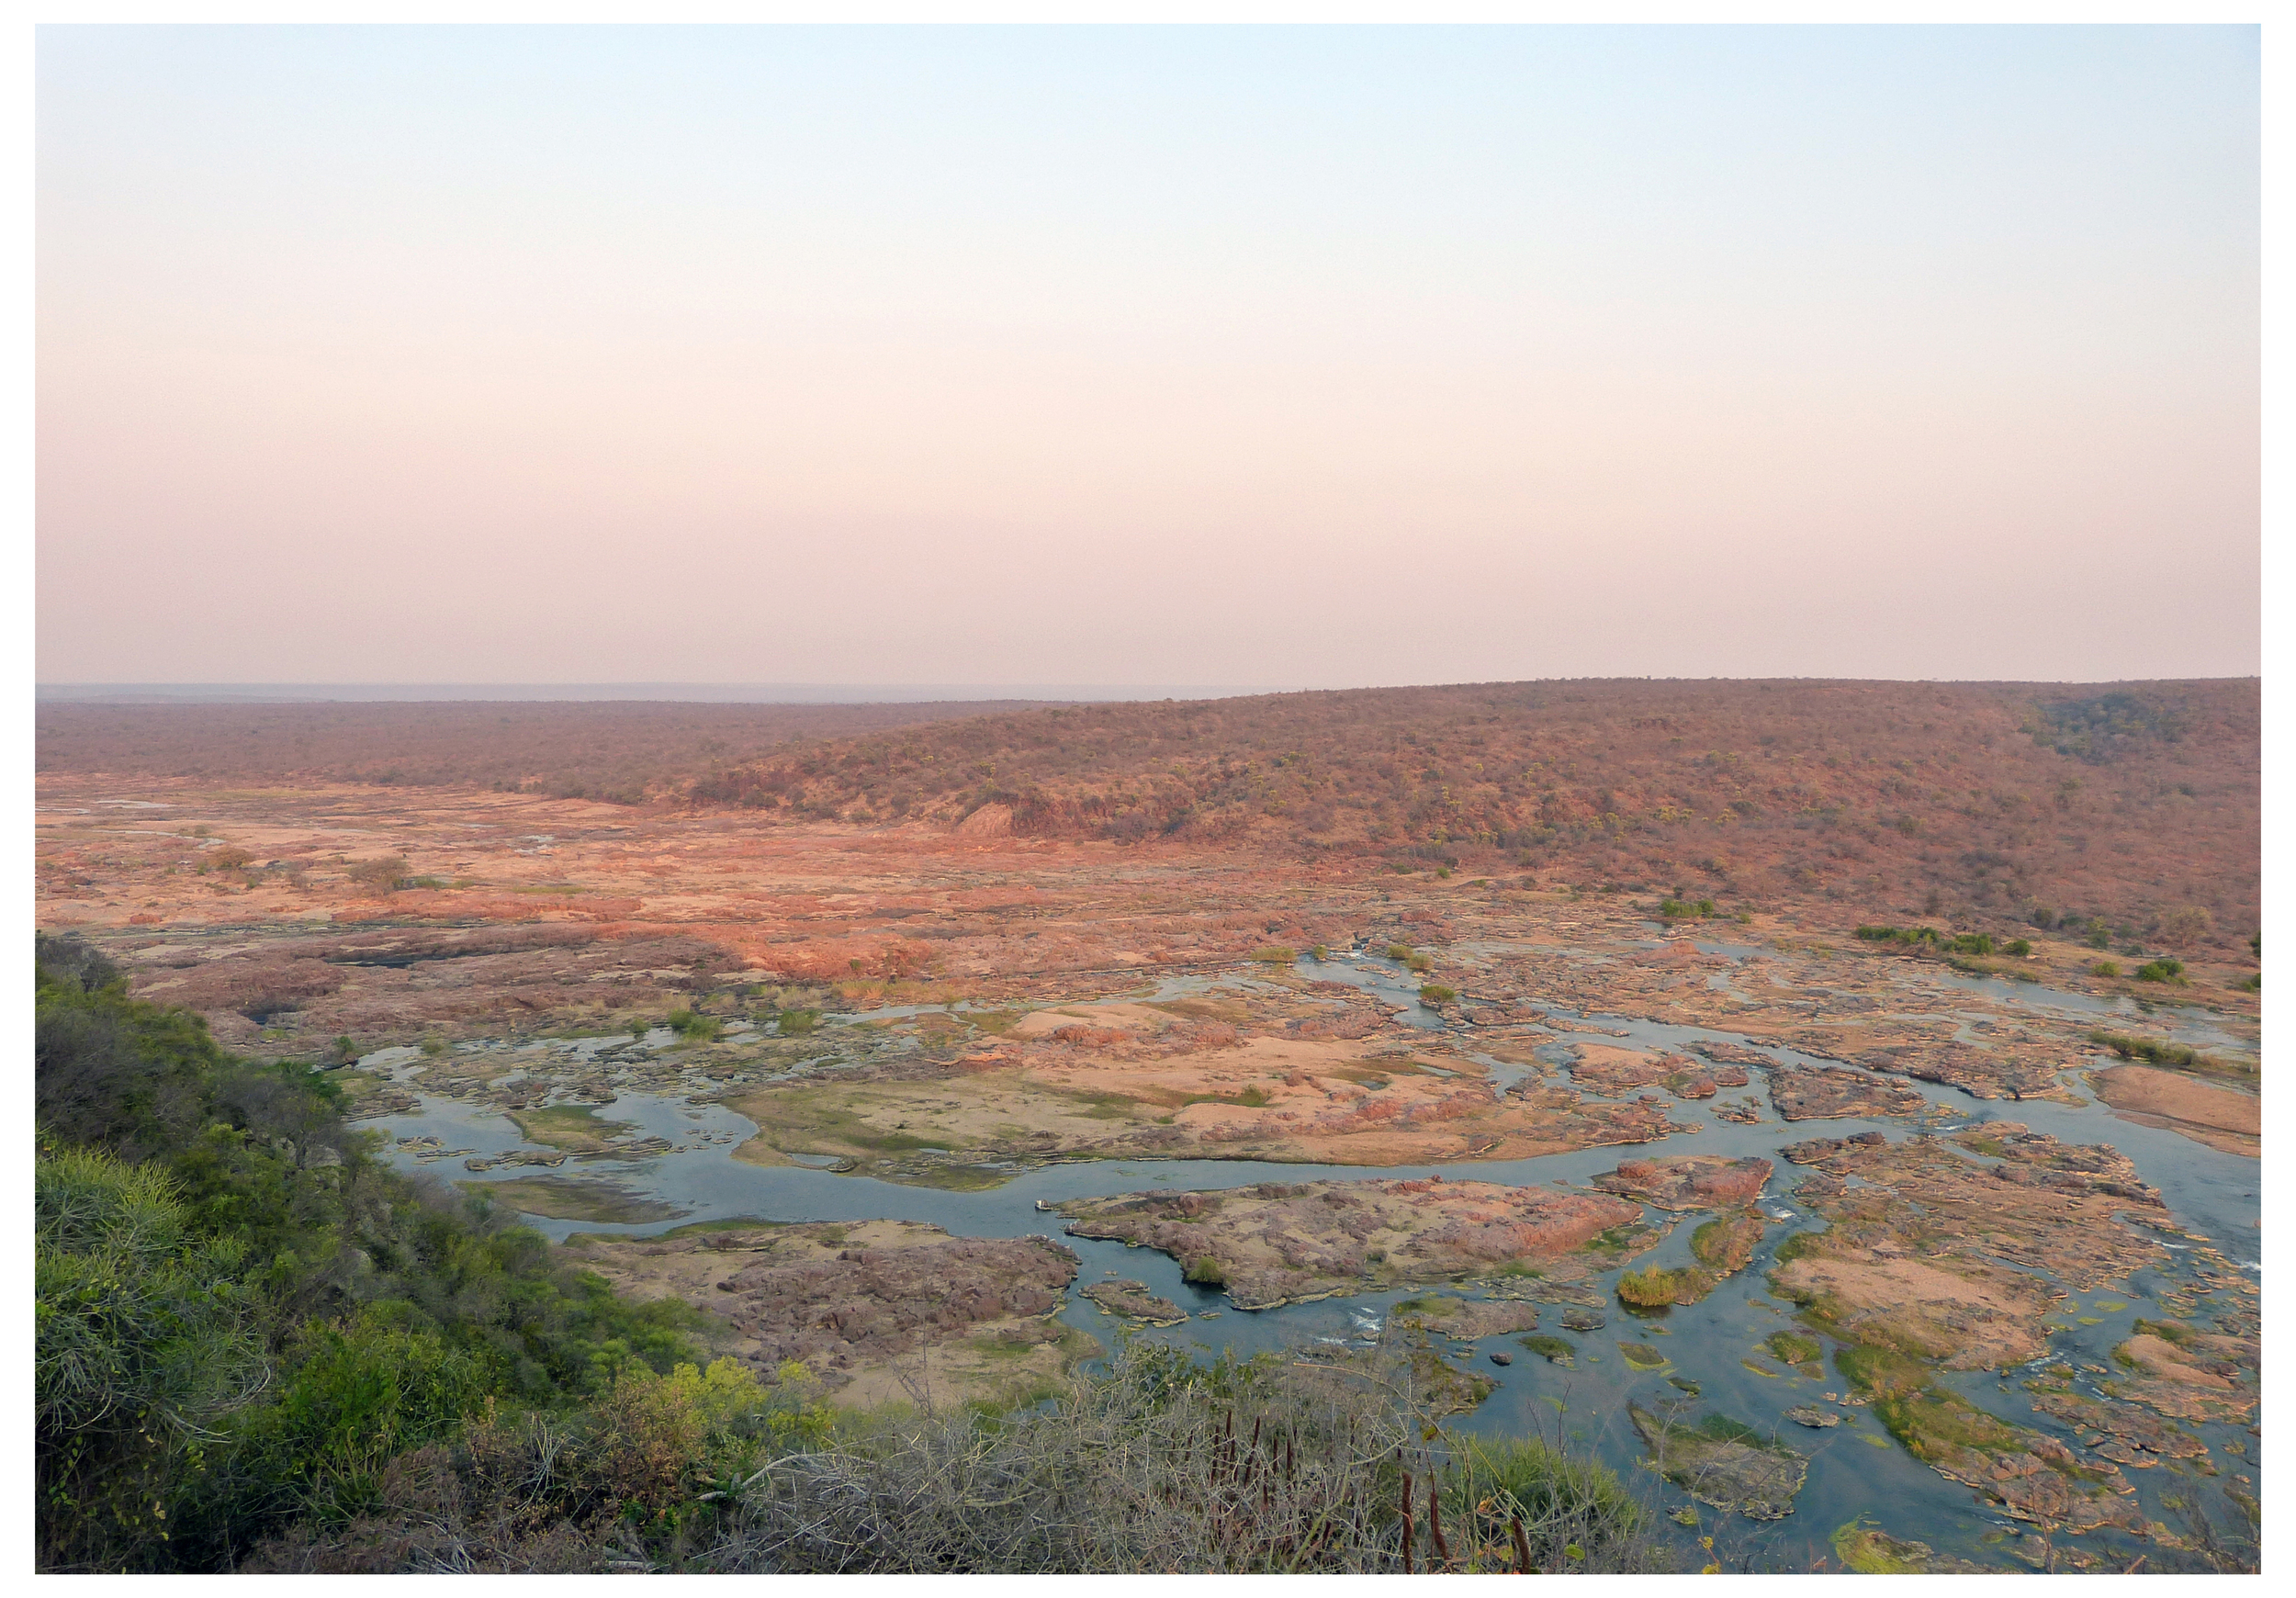 Olifants Camp, Kruger National Park, South Africa